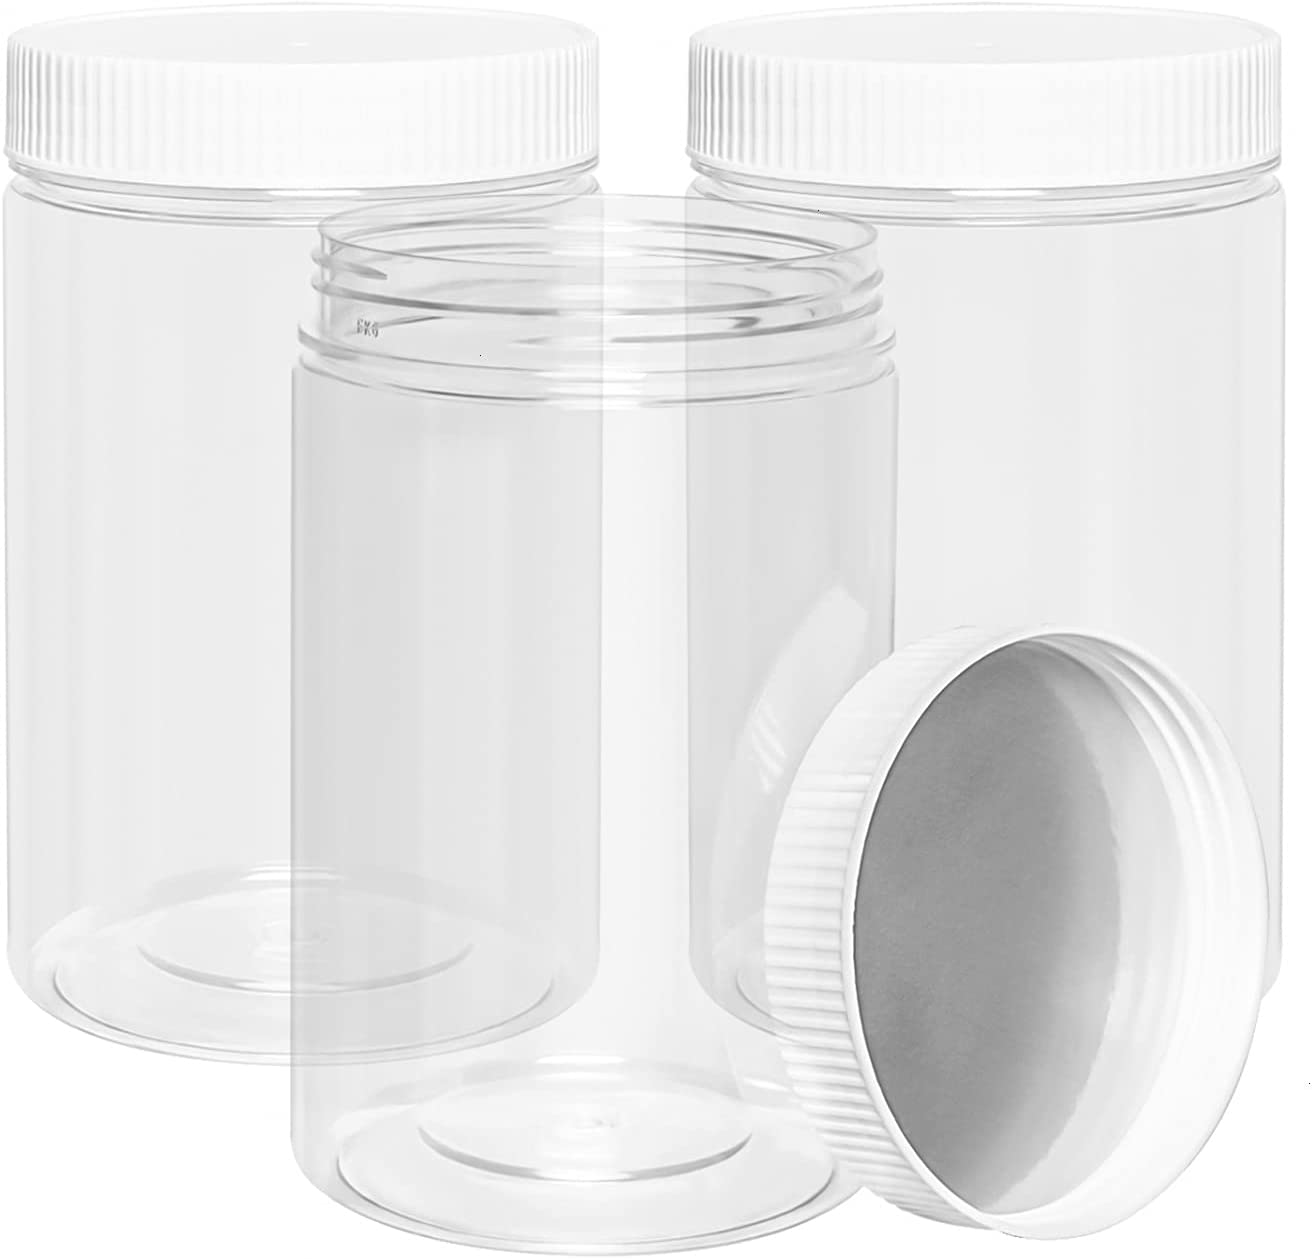 Vumdua 27 Ounce Plastic Jars with Lids, 3 Pack Food Storage Containers Airtight, Clear Containers for Organizing (White)